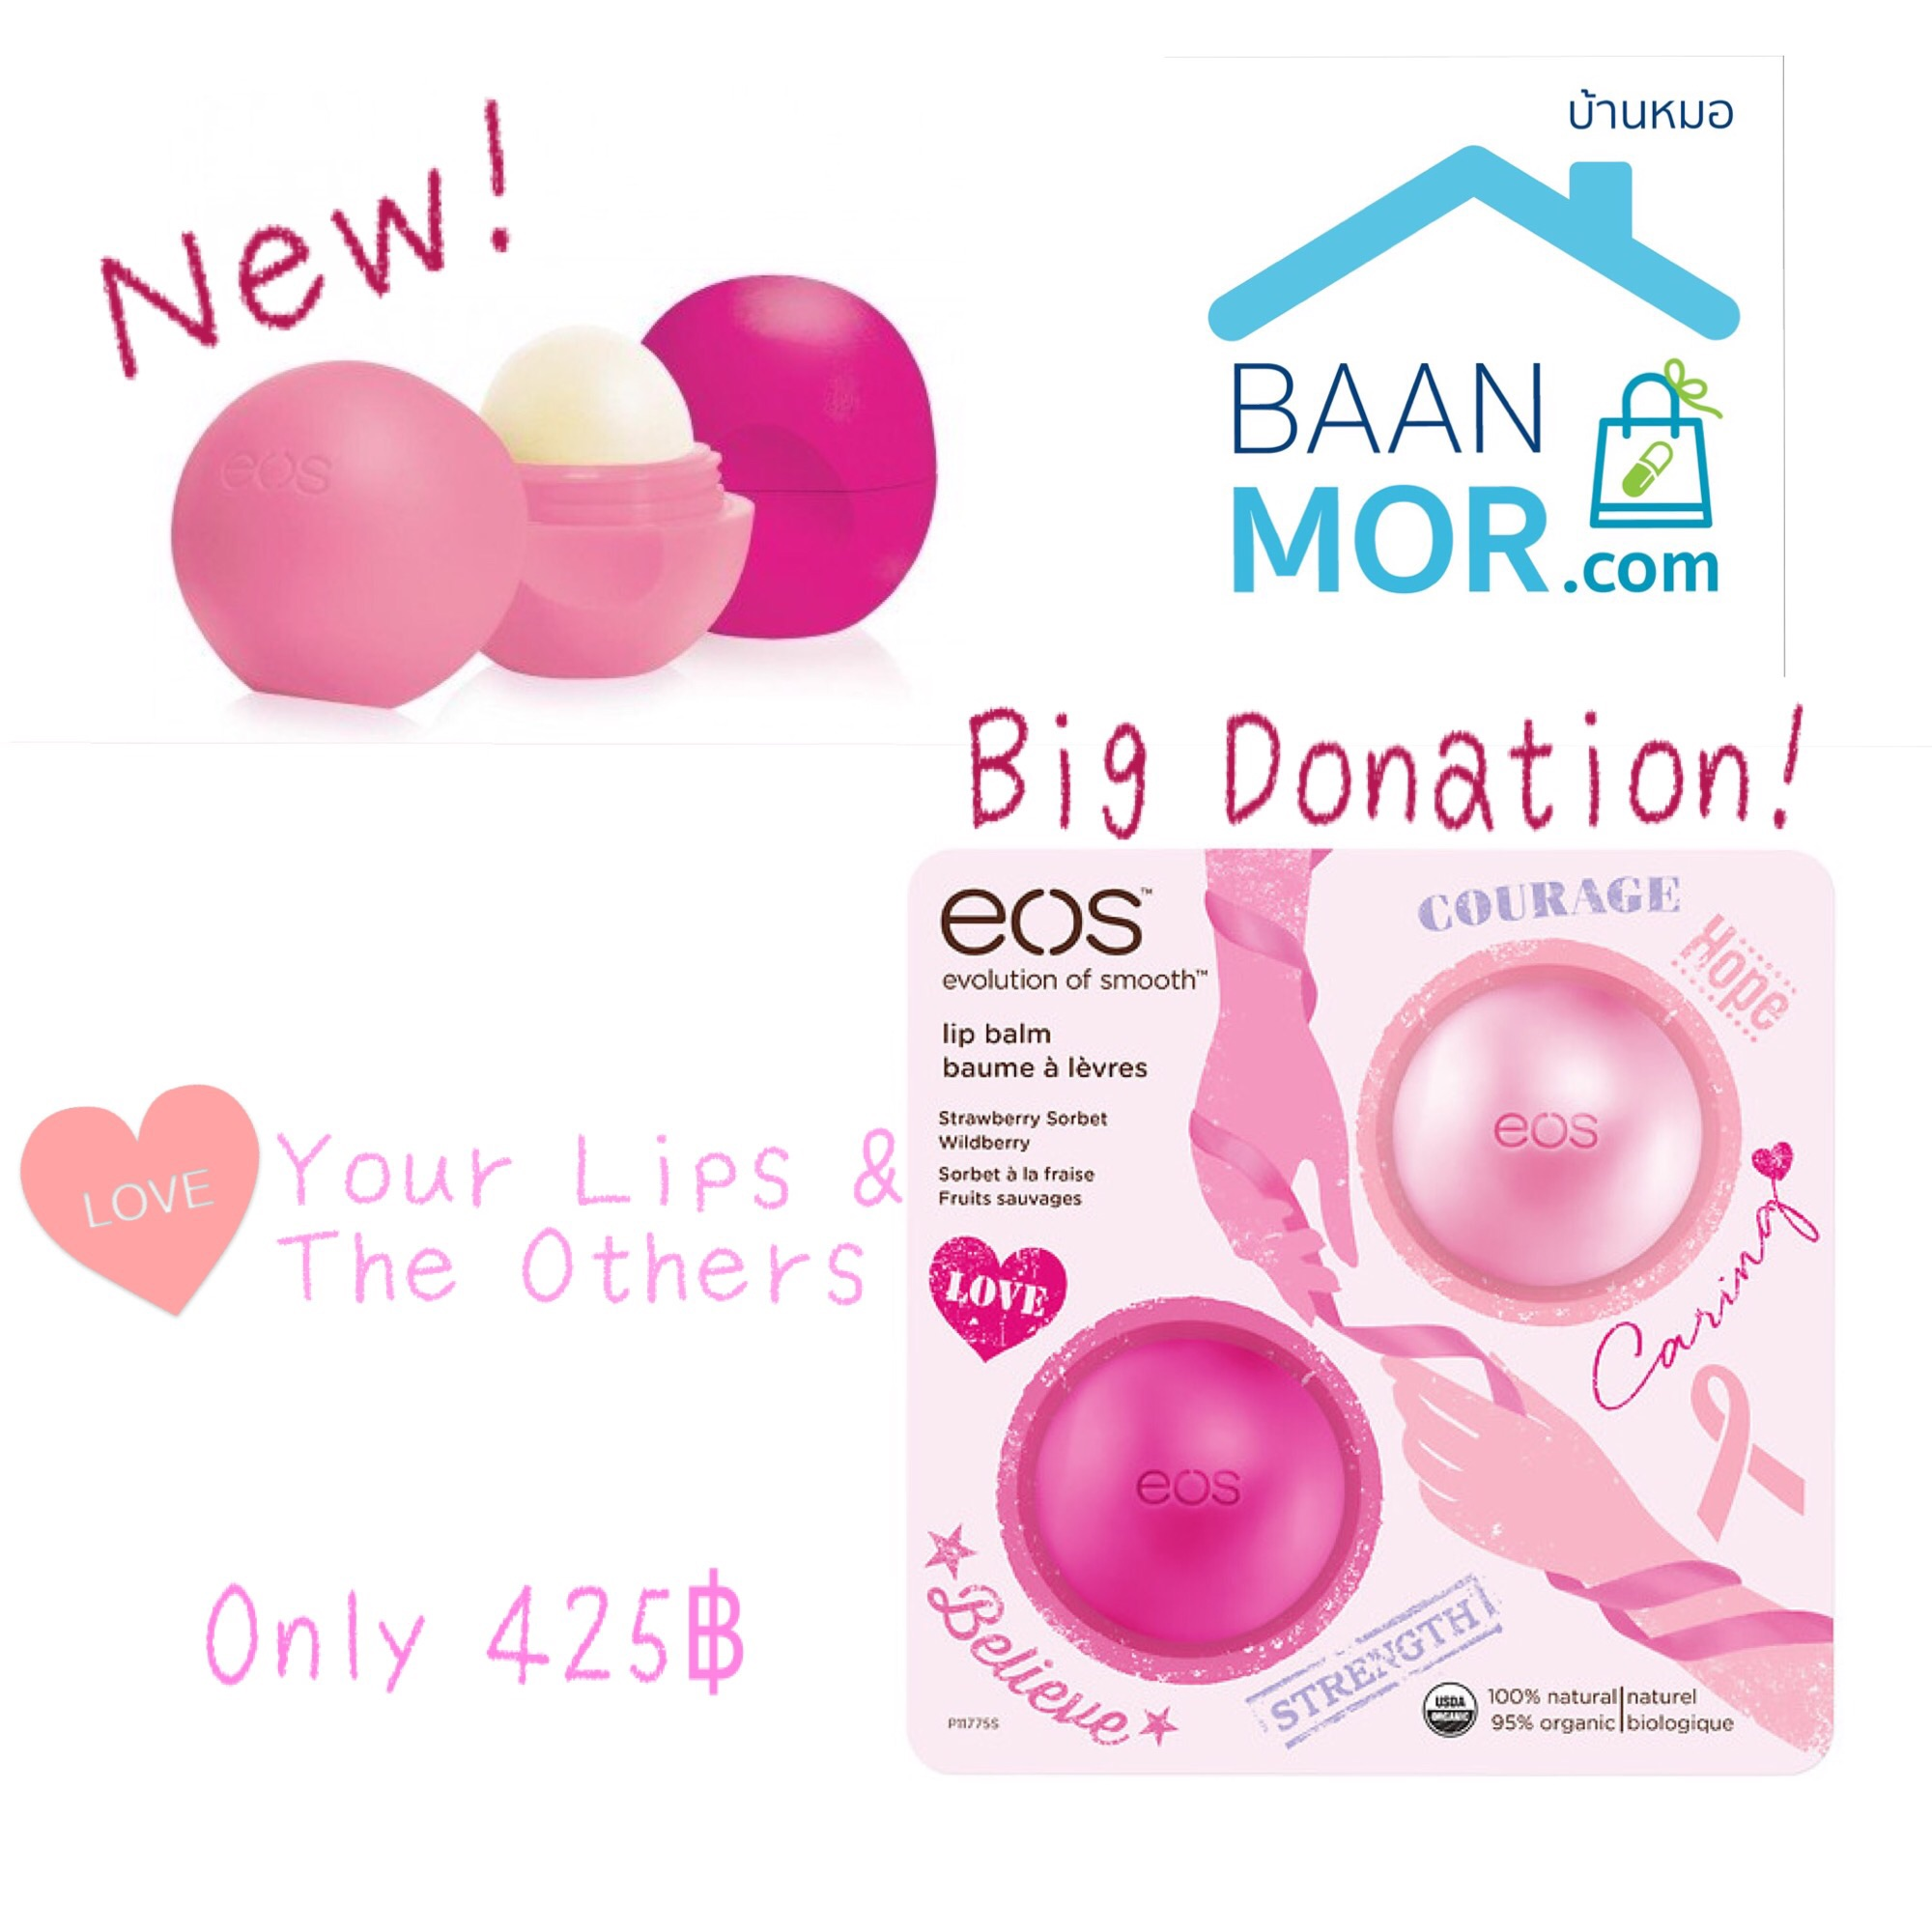 EOS Lip balm มาใหม่อีกแล้วจ้าา &#x1F353 Strawberry Sorbet & Limited Wildberry! 95% Organic 100% Natural Limited Edition! &#x2764️&#x1F381&#x2764️